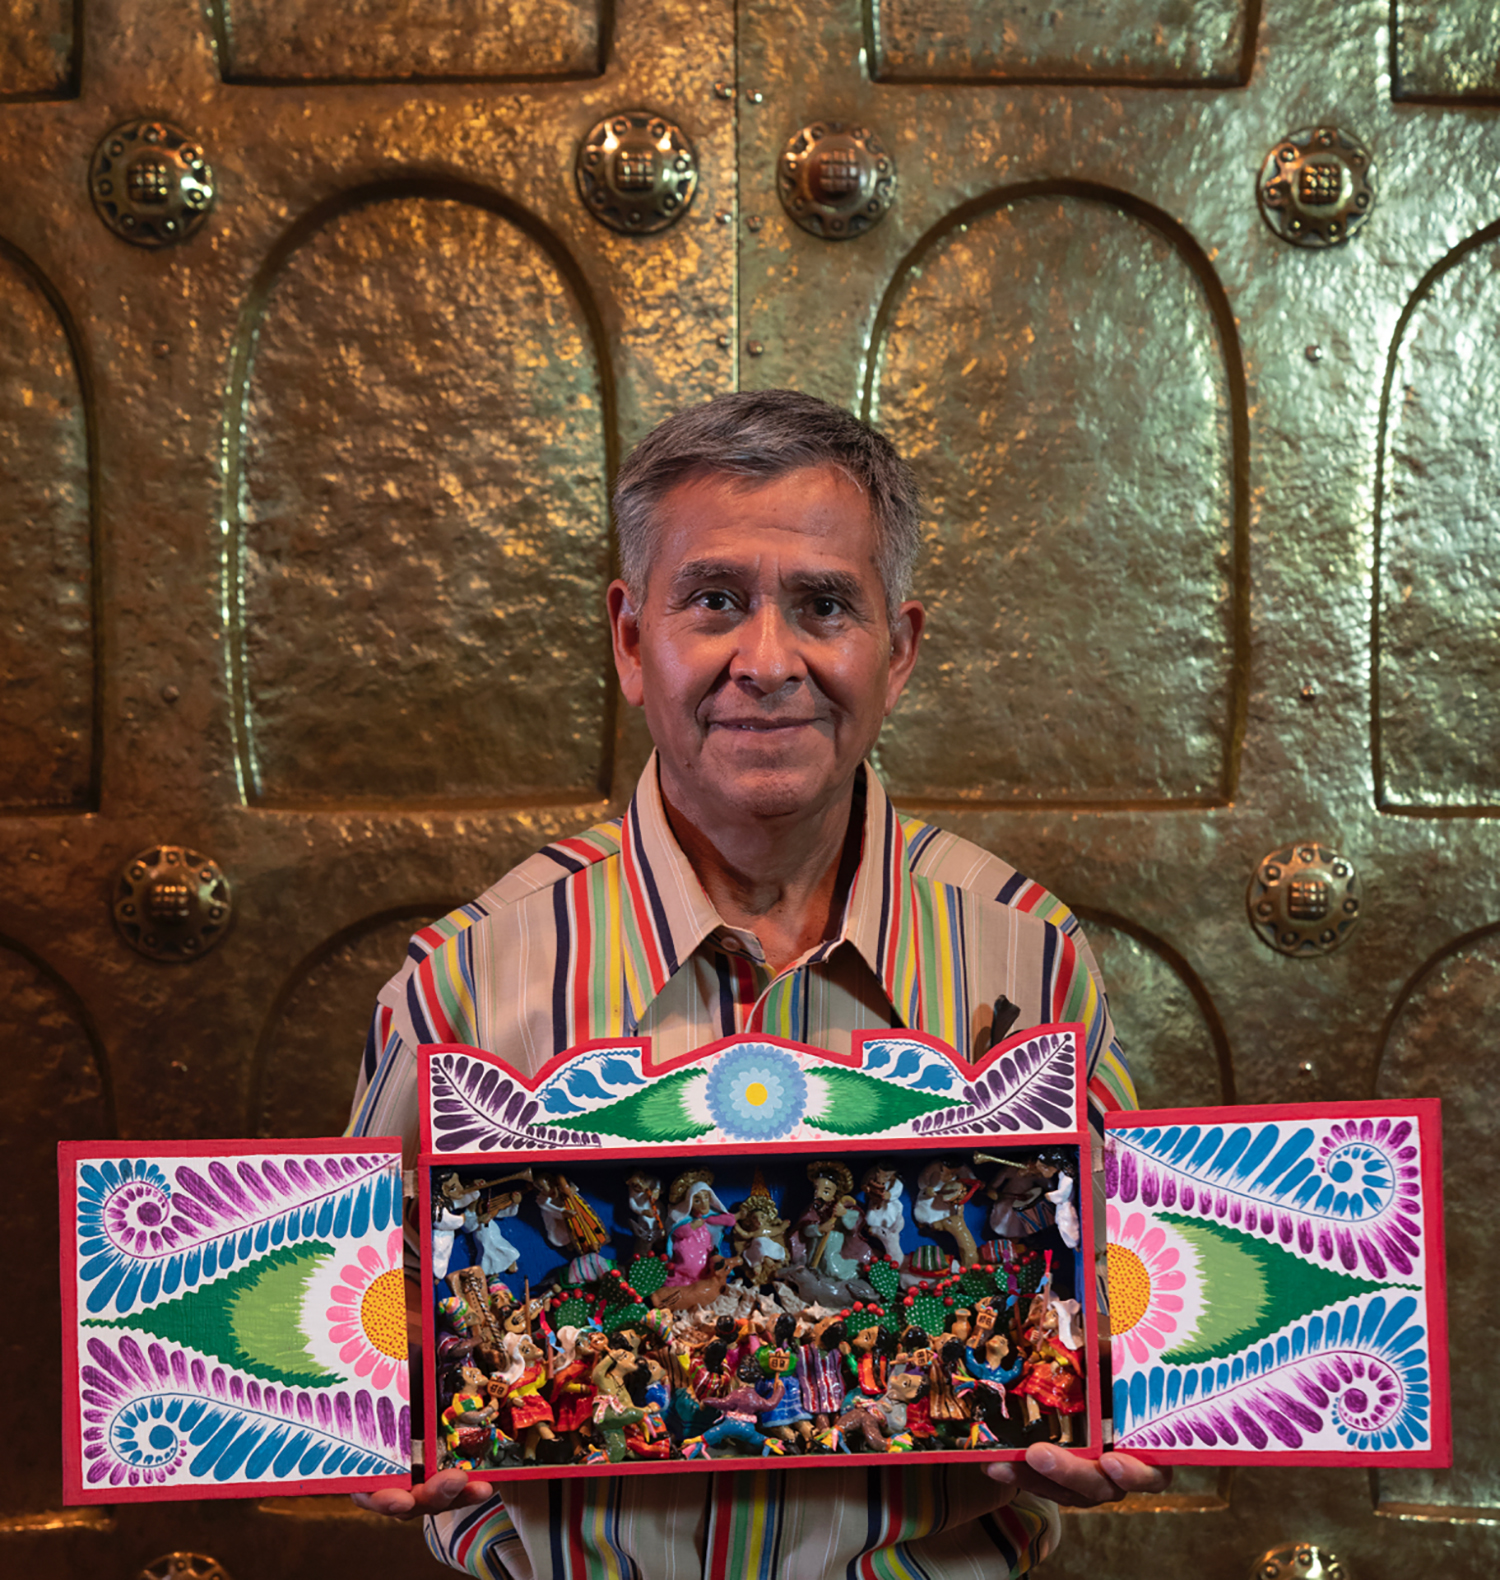 Figure 9: Jeronimo Lozano with a Nativity retablo in Glencairn's Great Hall, 2018. Lozano grew up and learned his craft in his native Peru; he now lives in Salt Lake City, Utah.